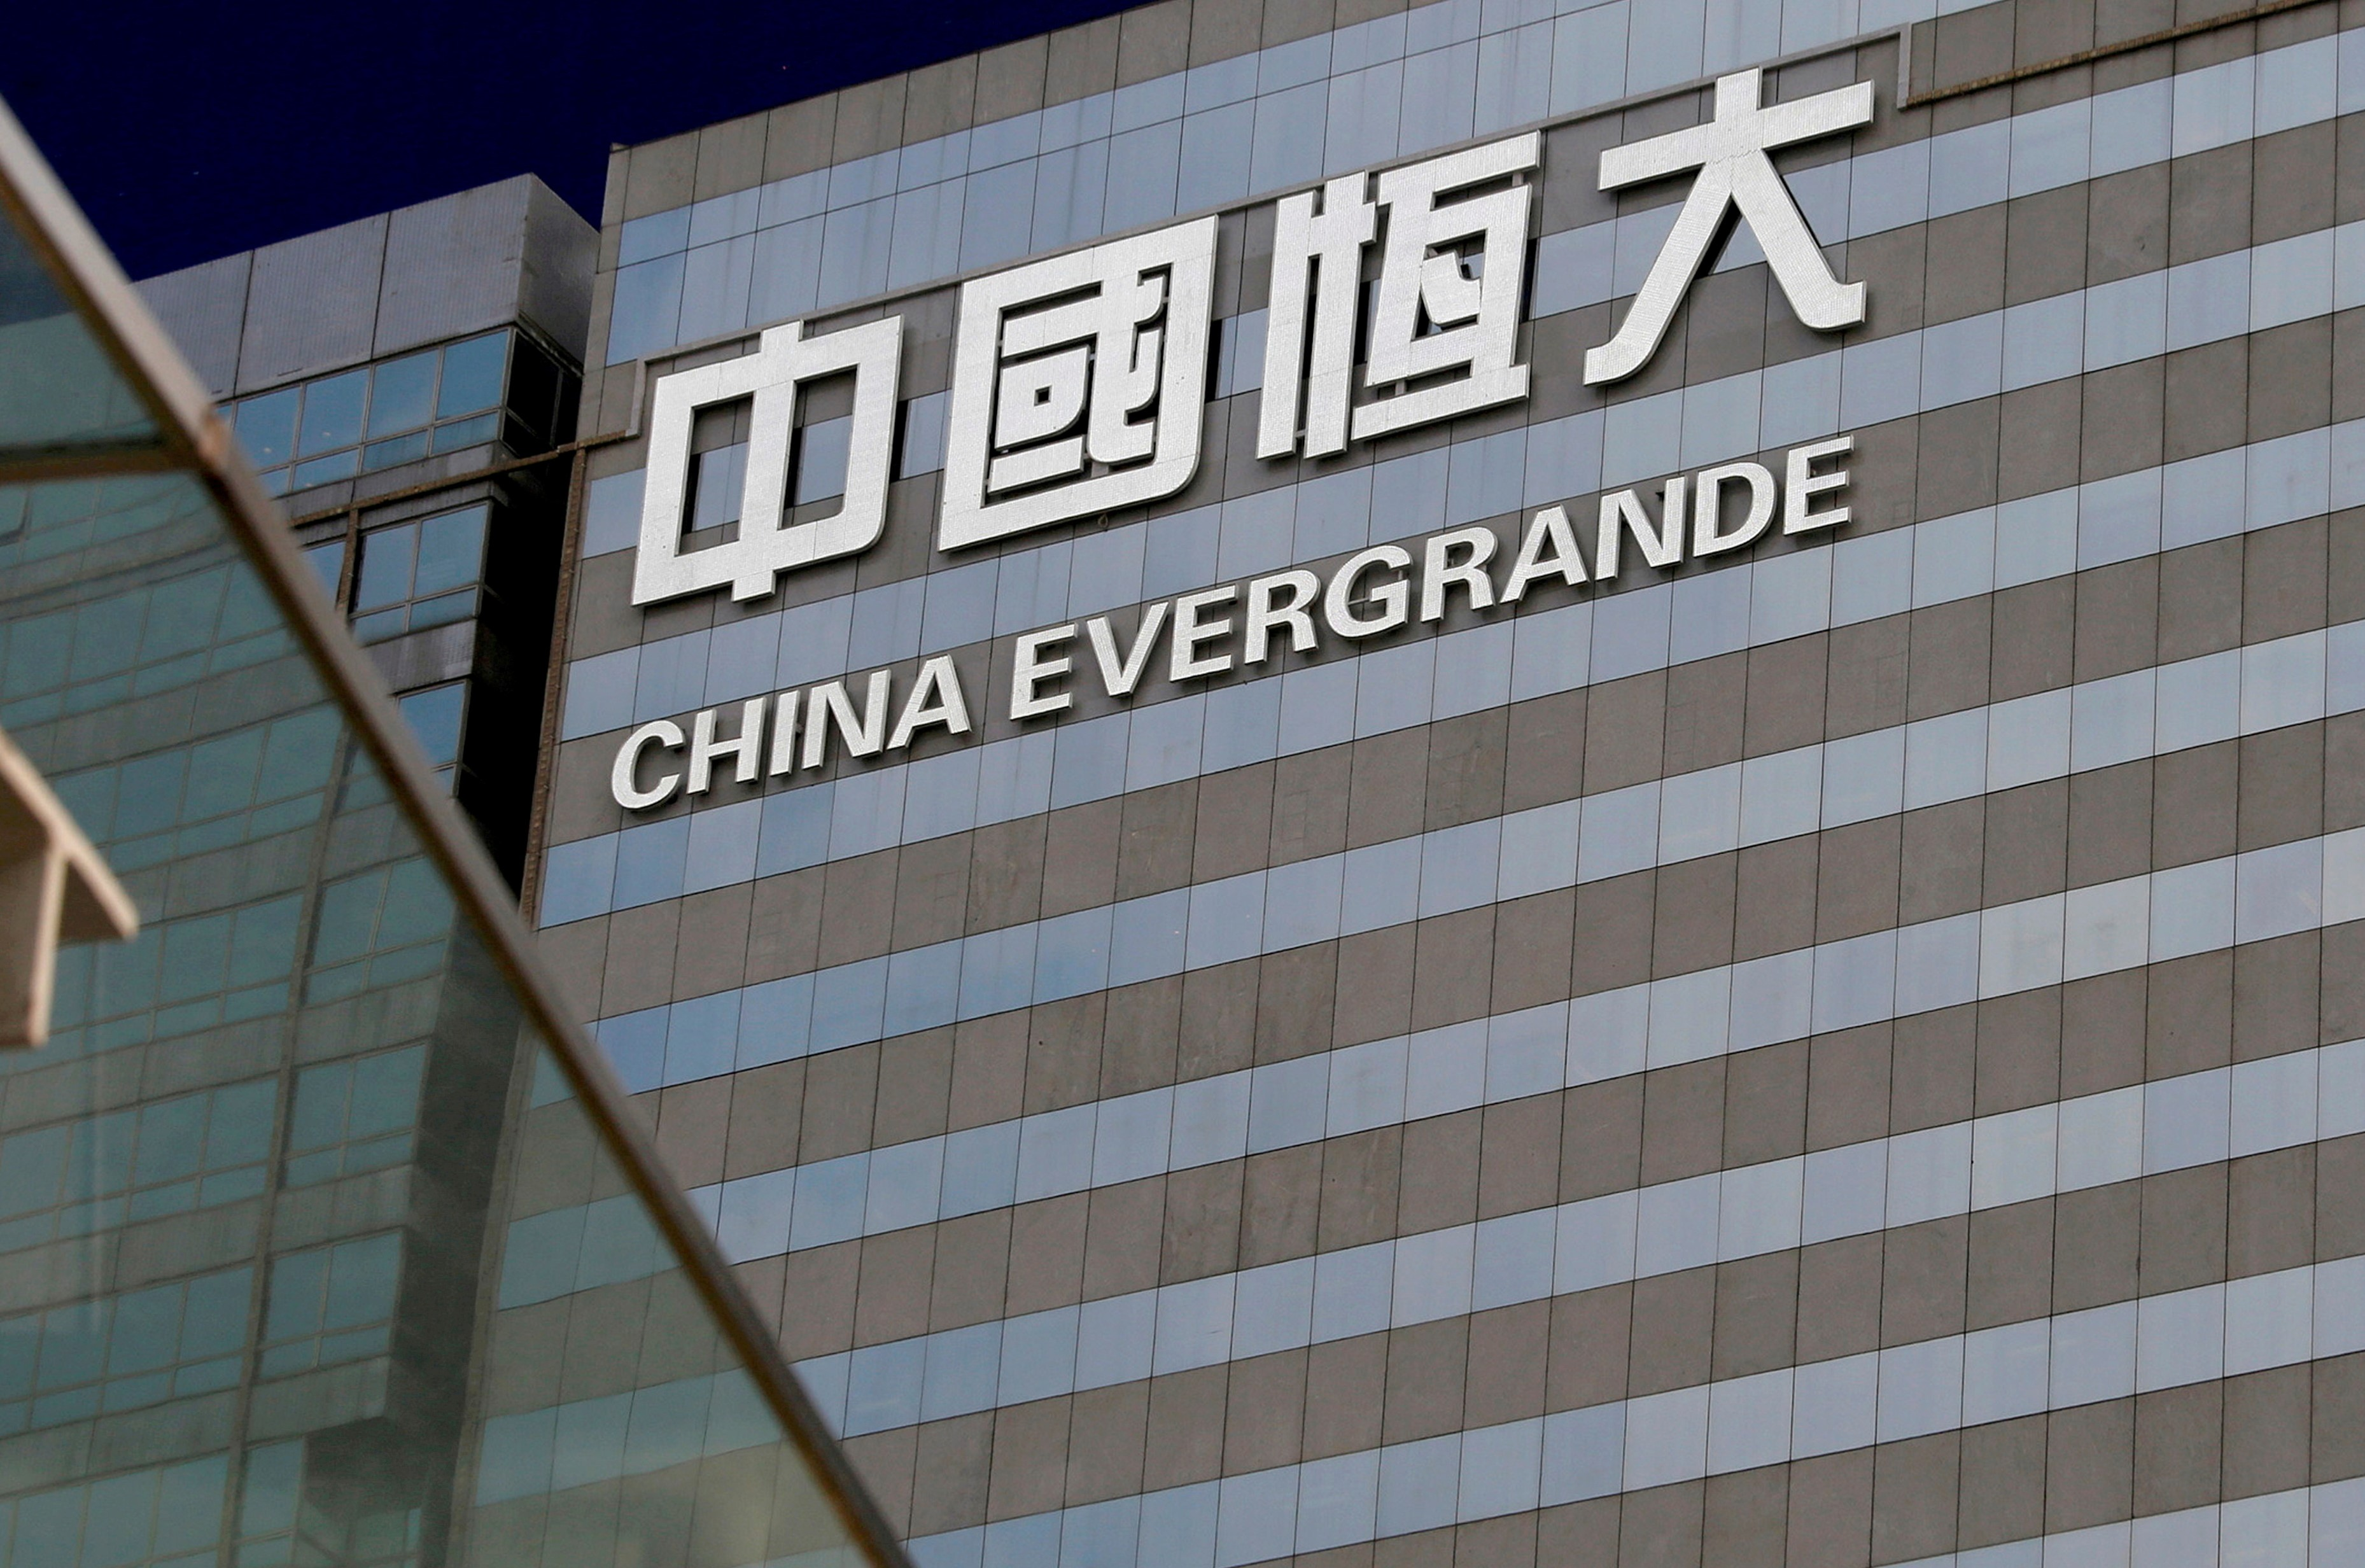 Are you worried about Evergrande?